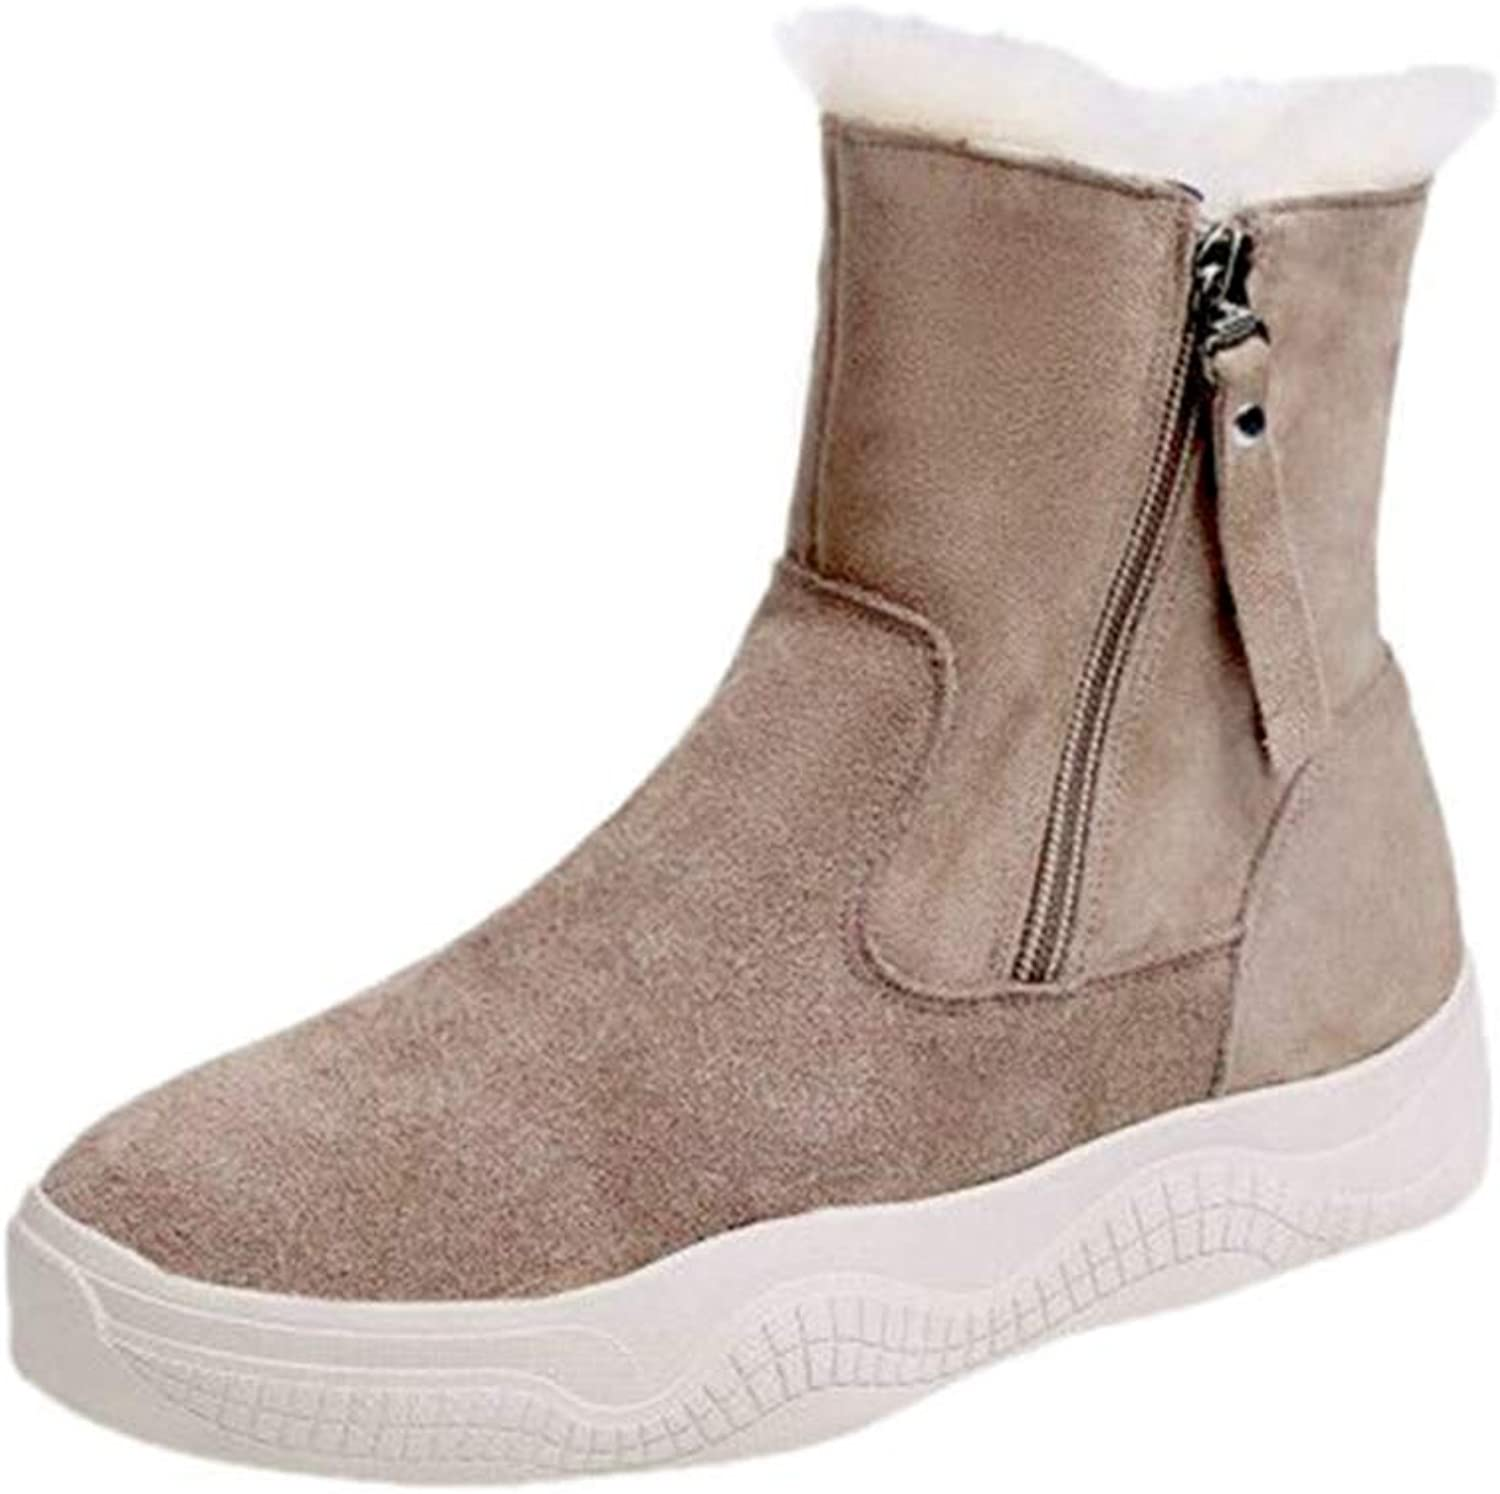 T-JULY Women Winter Vulcanize Wedges Sneakers Ladies Fashion High-top Platform Casual shoes